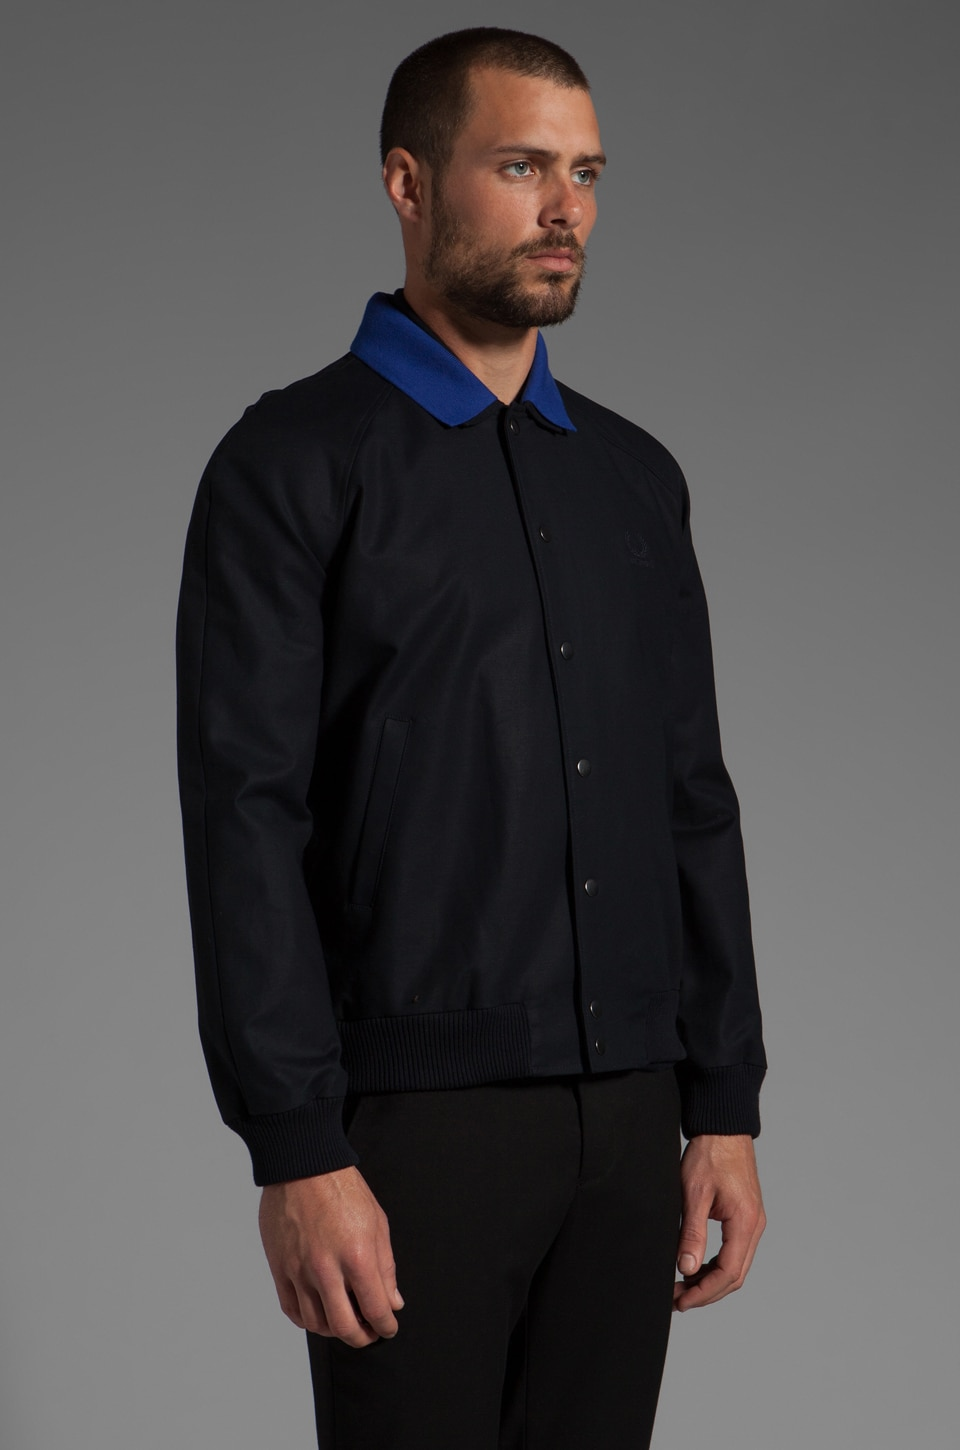 Fred Perry x Raf Simons Bomber Jacket w/ Detachable Collar in Navy